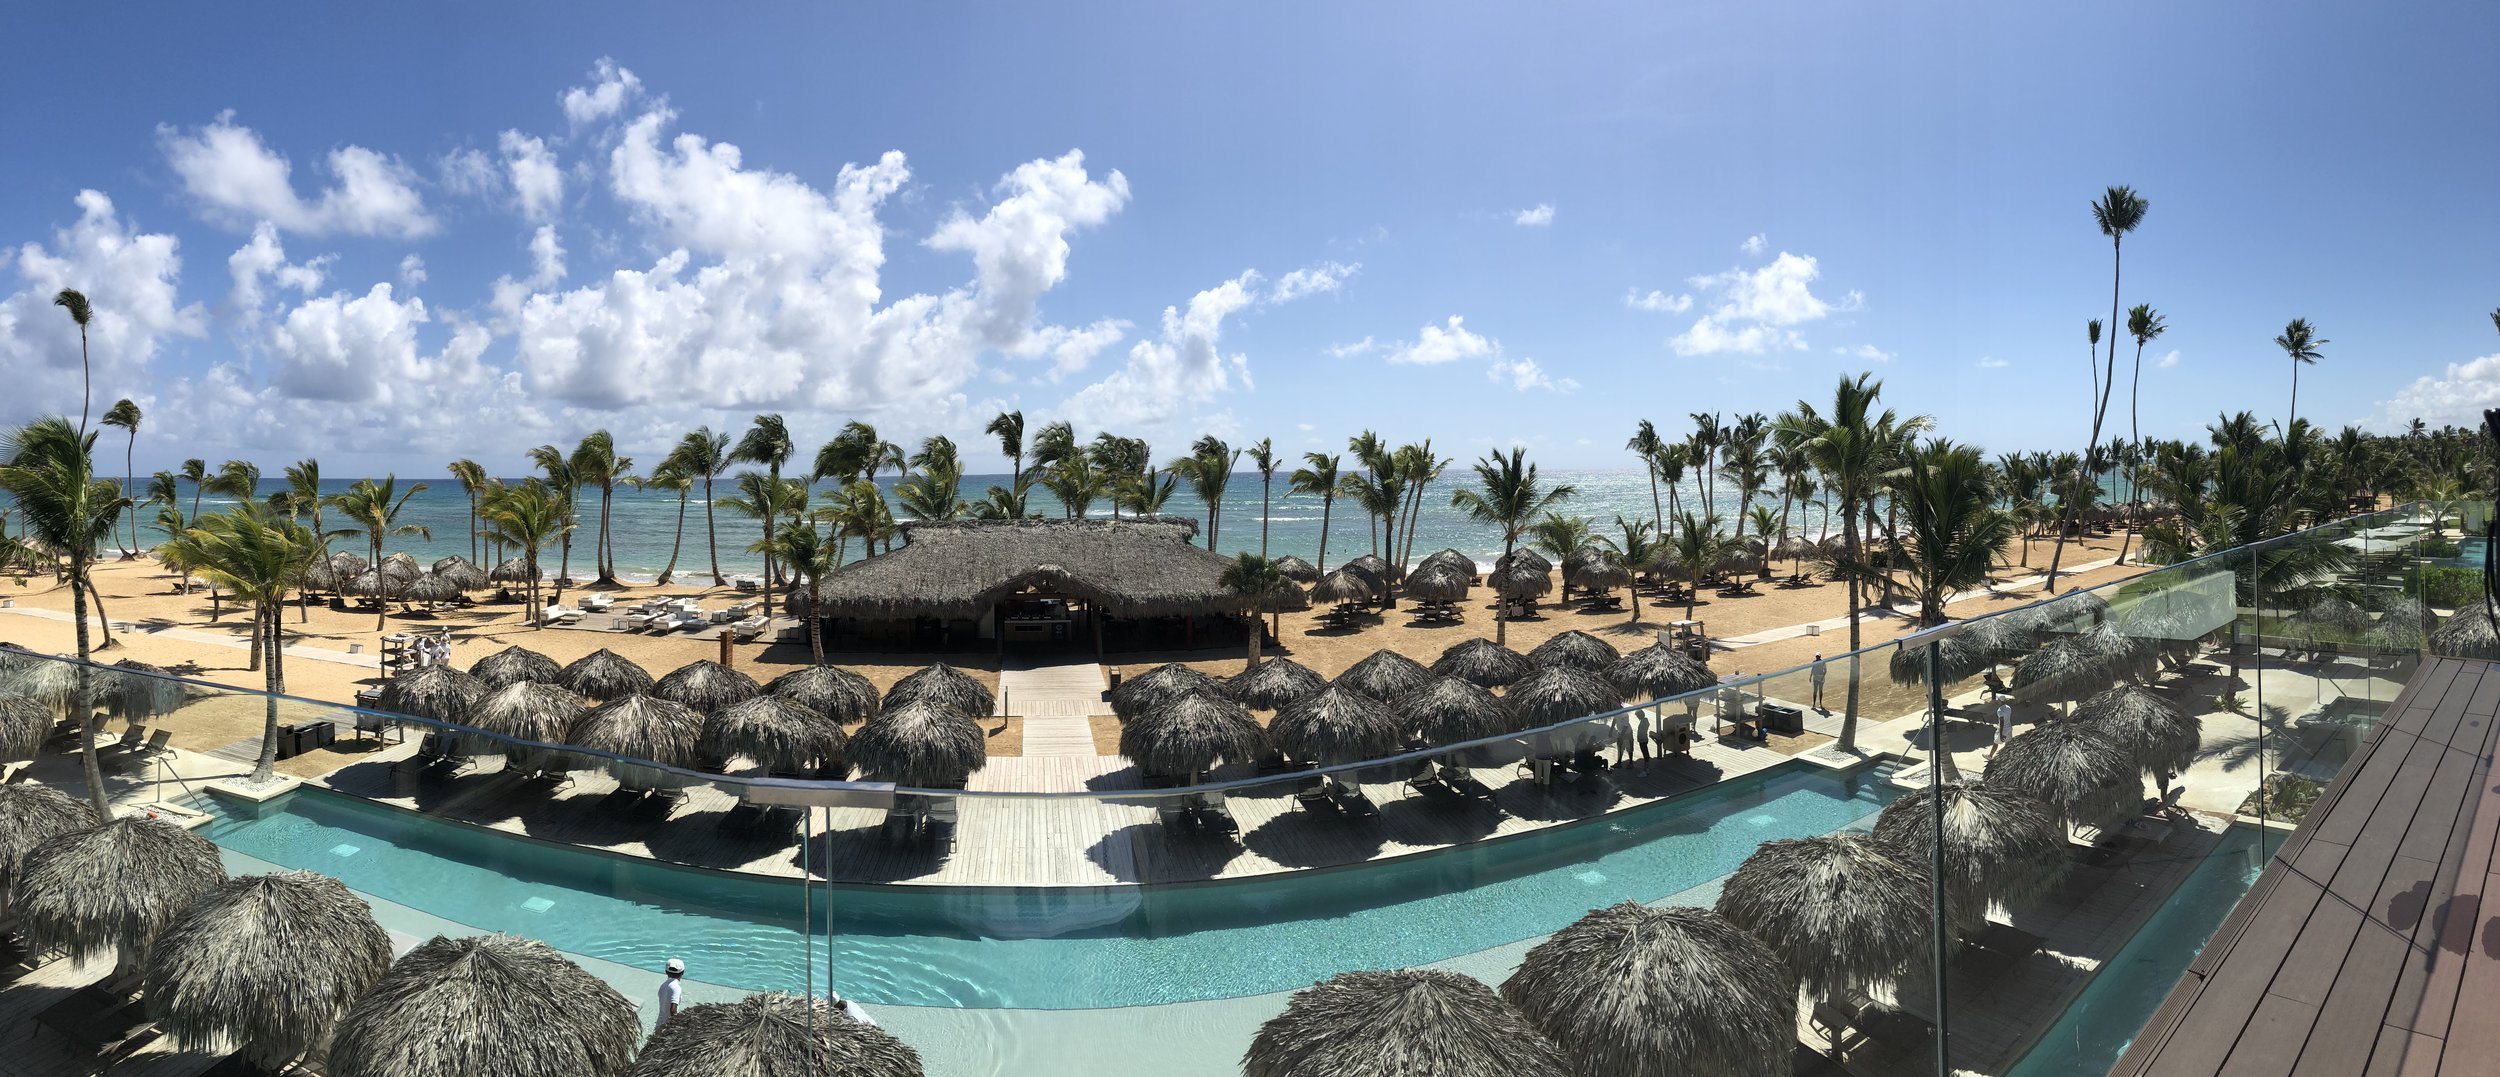 The view from the sun bathing deck atop the beach side restaurant.